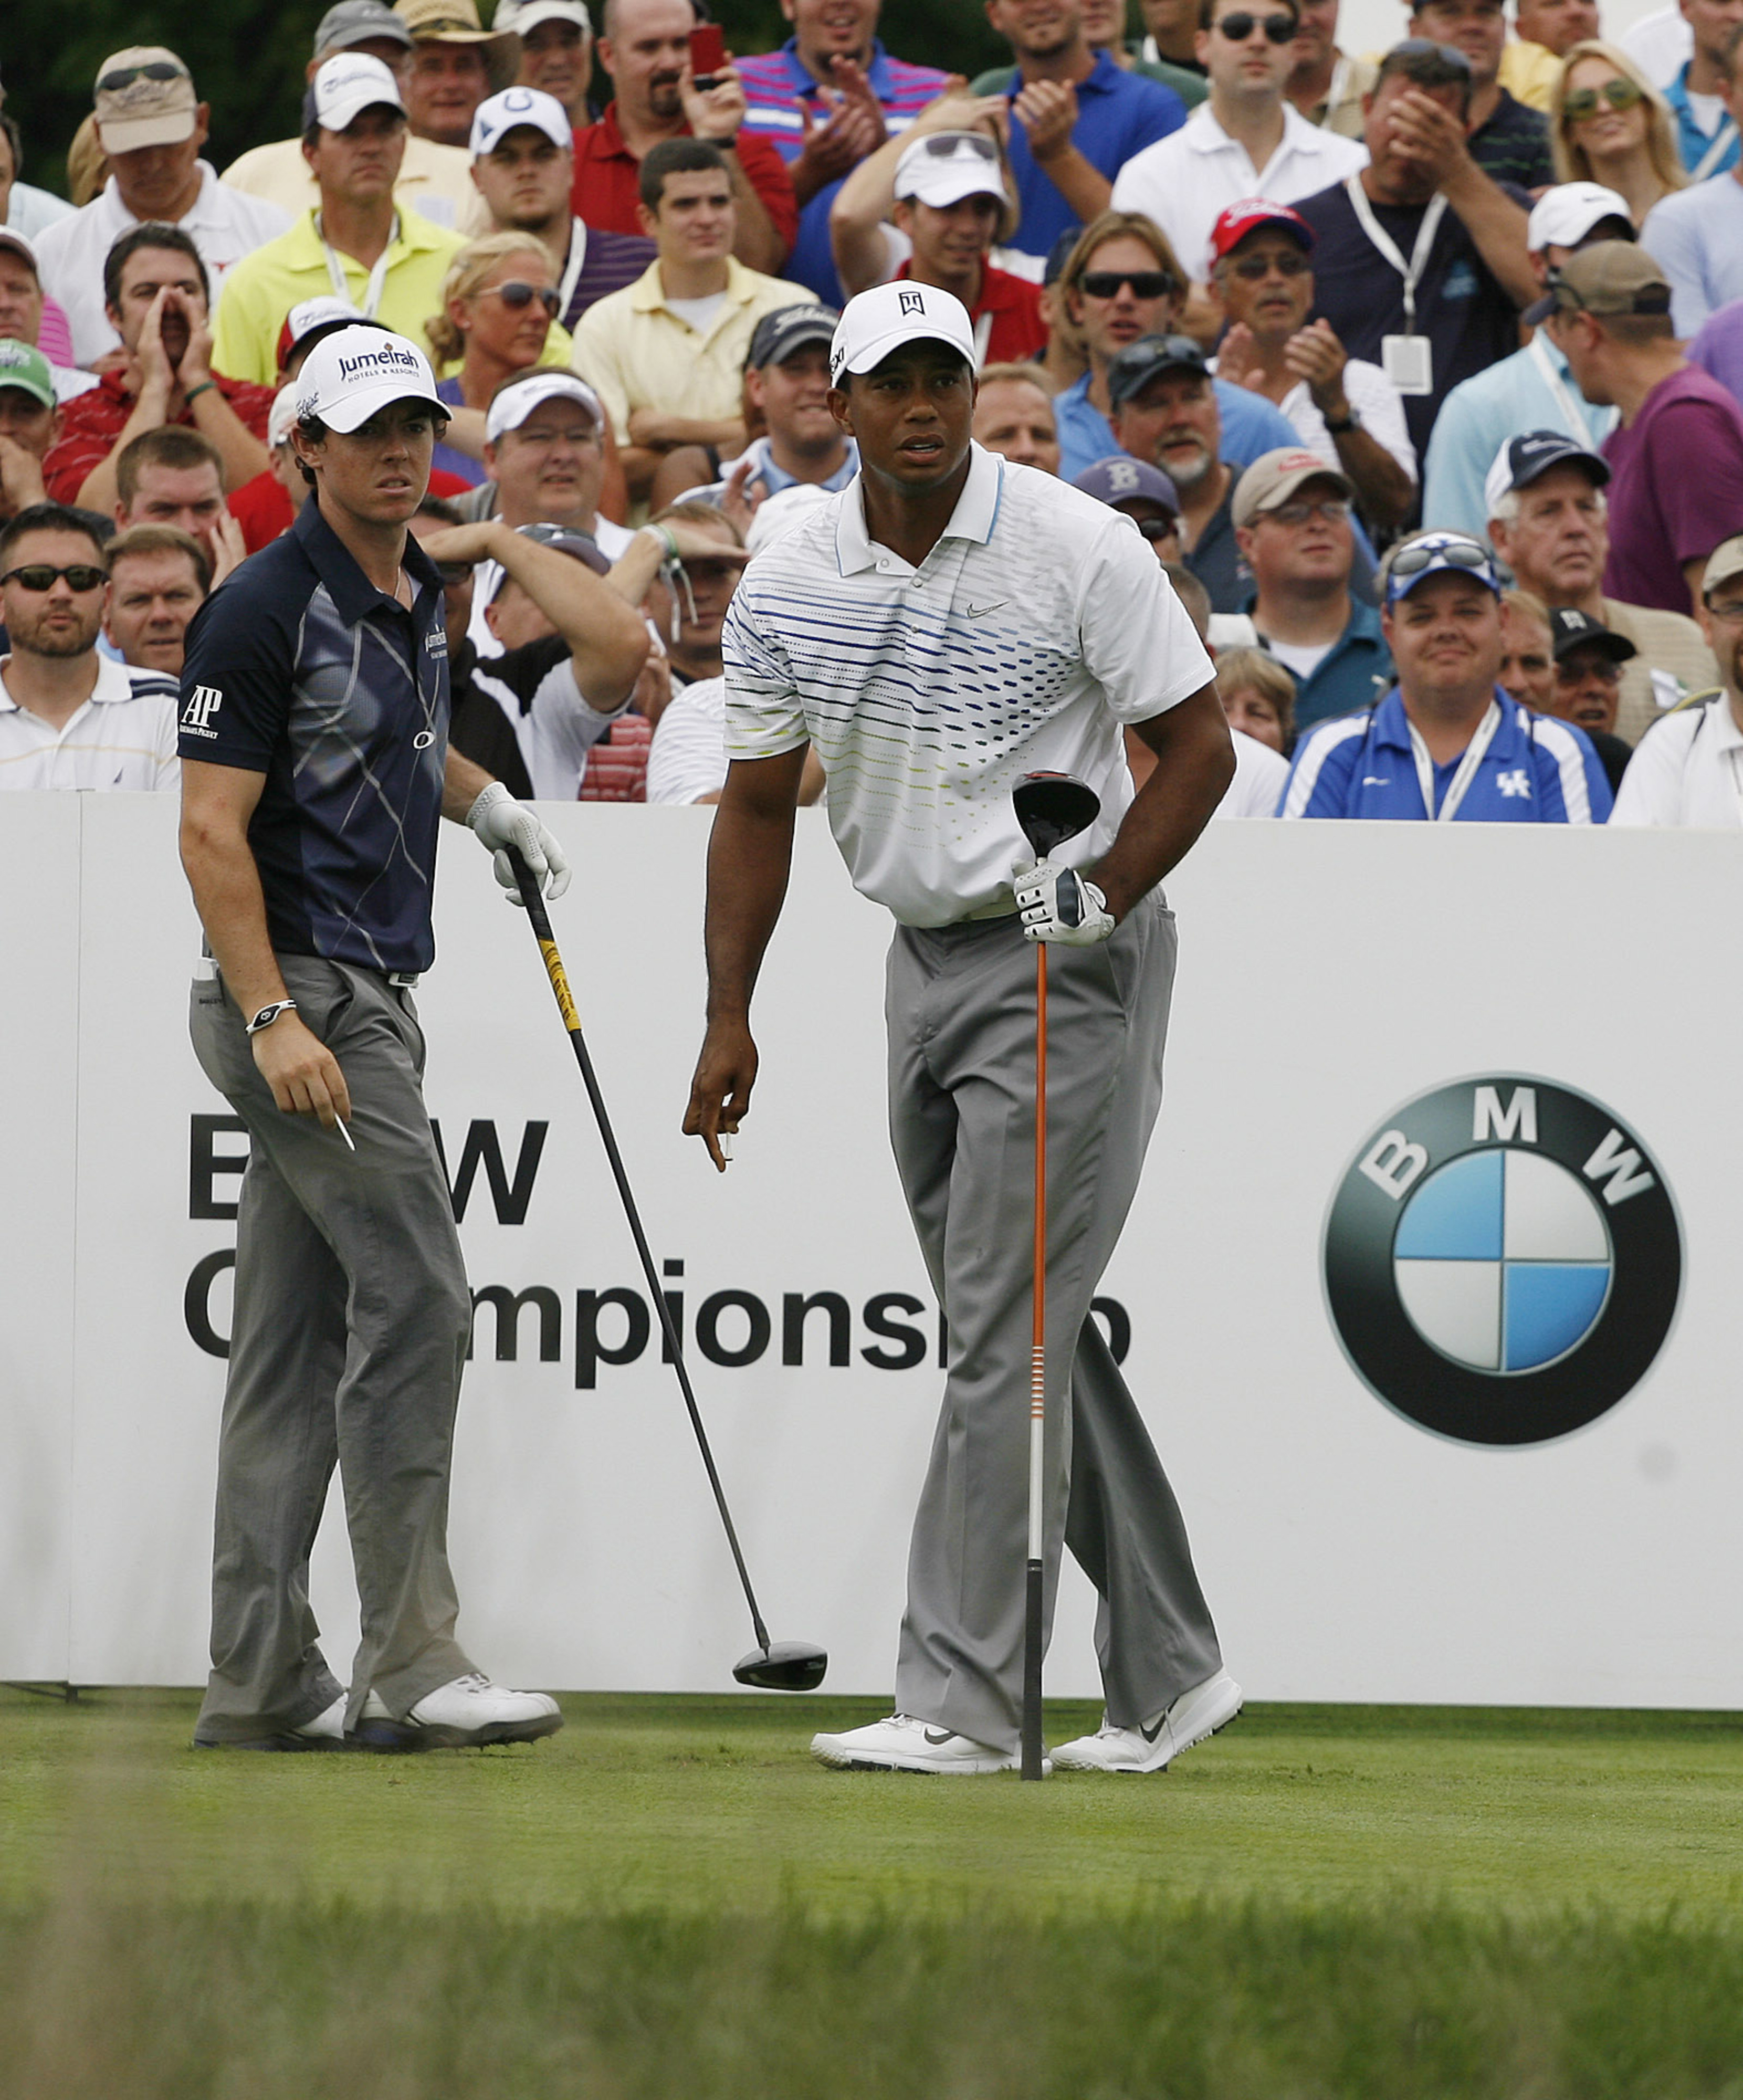 Sep 7, 2012; Carmel, IN, USA; Tiger Woods (right) and Rory McIlroy (left) watch where Tiger's drive lands on the 18th hole during the second round of the BMW Championship at Crooked Stick Golf Club. Mandatory Credit: Brian Spurlock-US PRESSWIRE